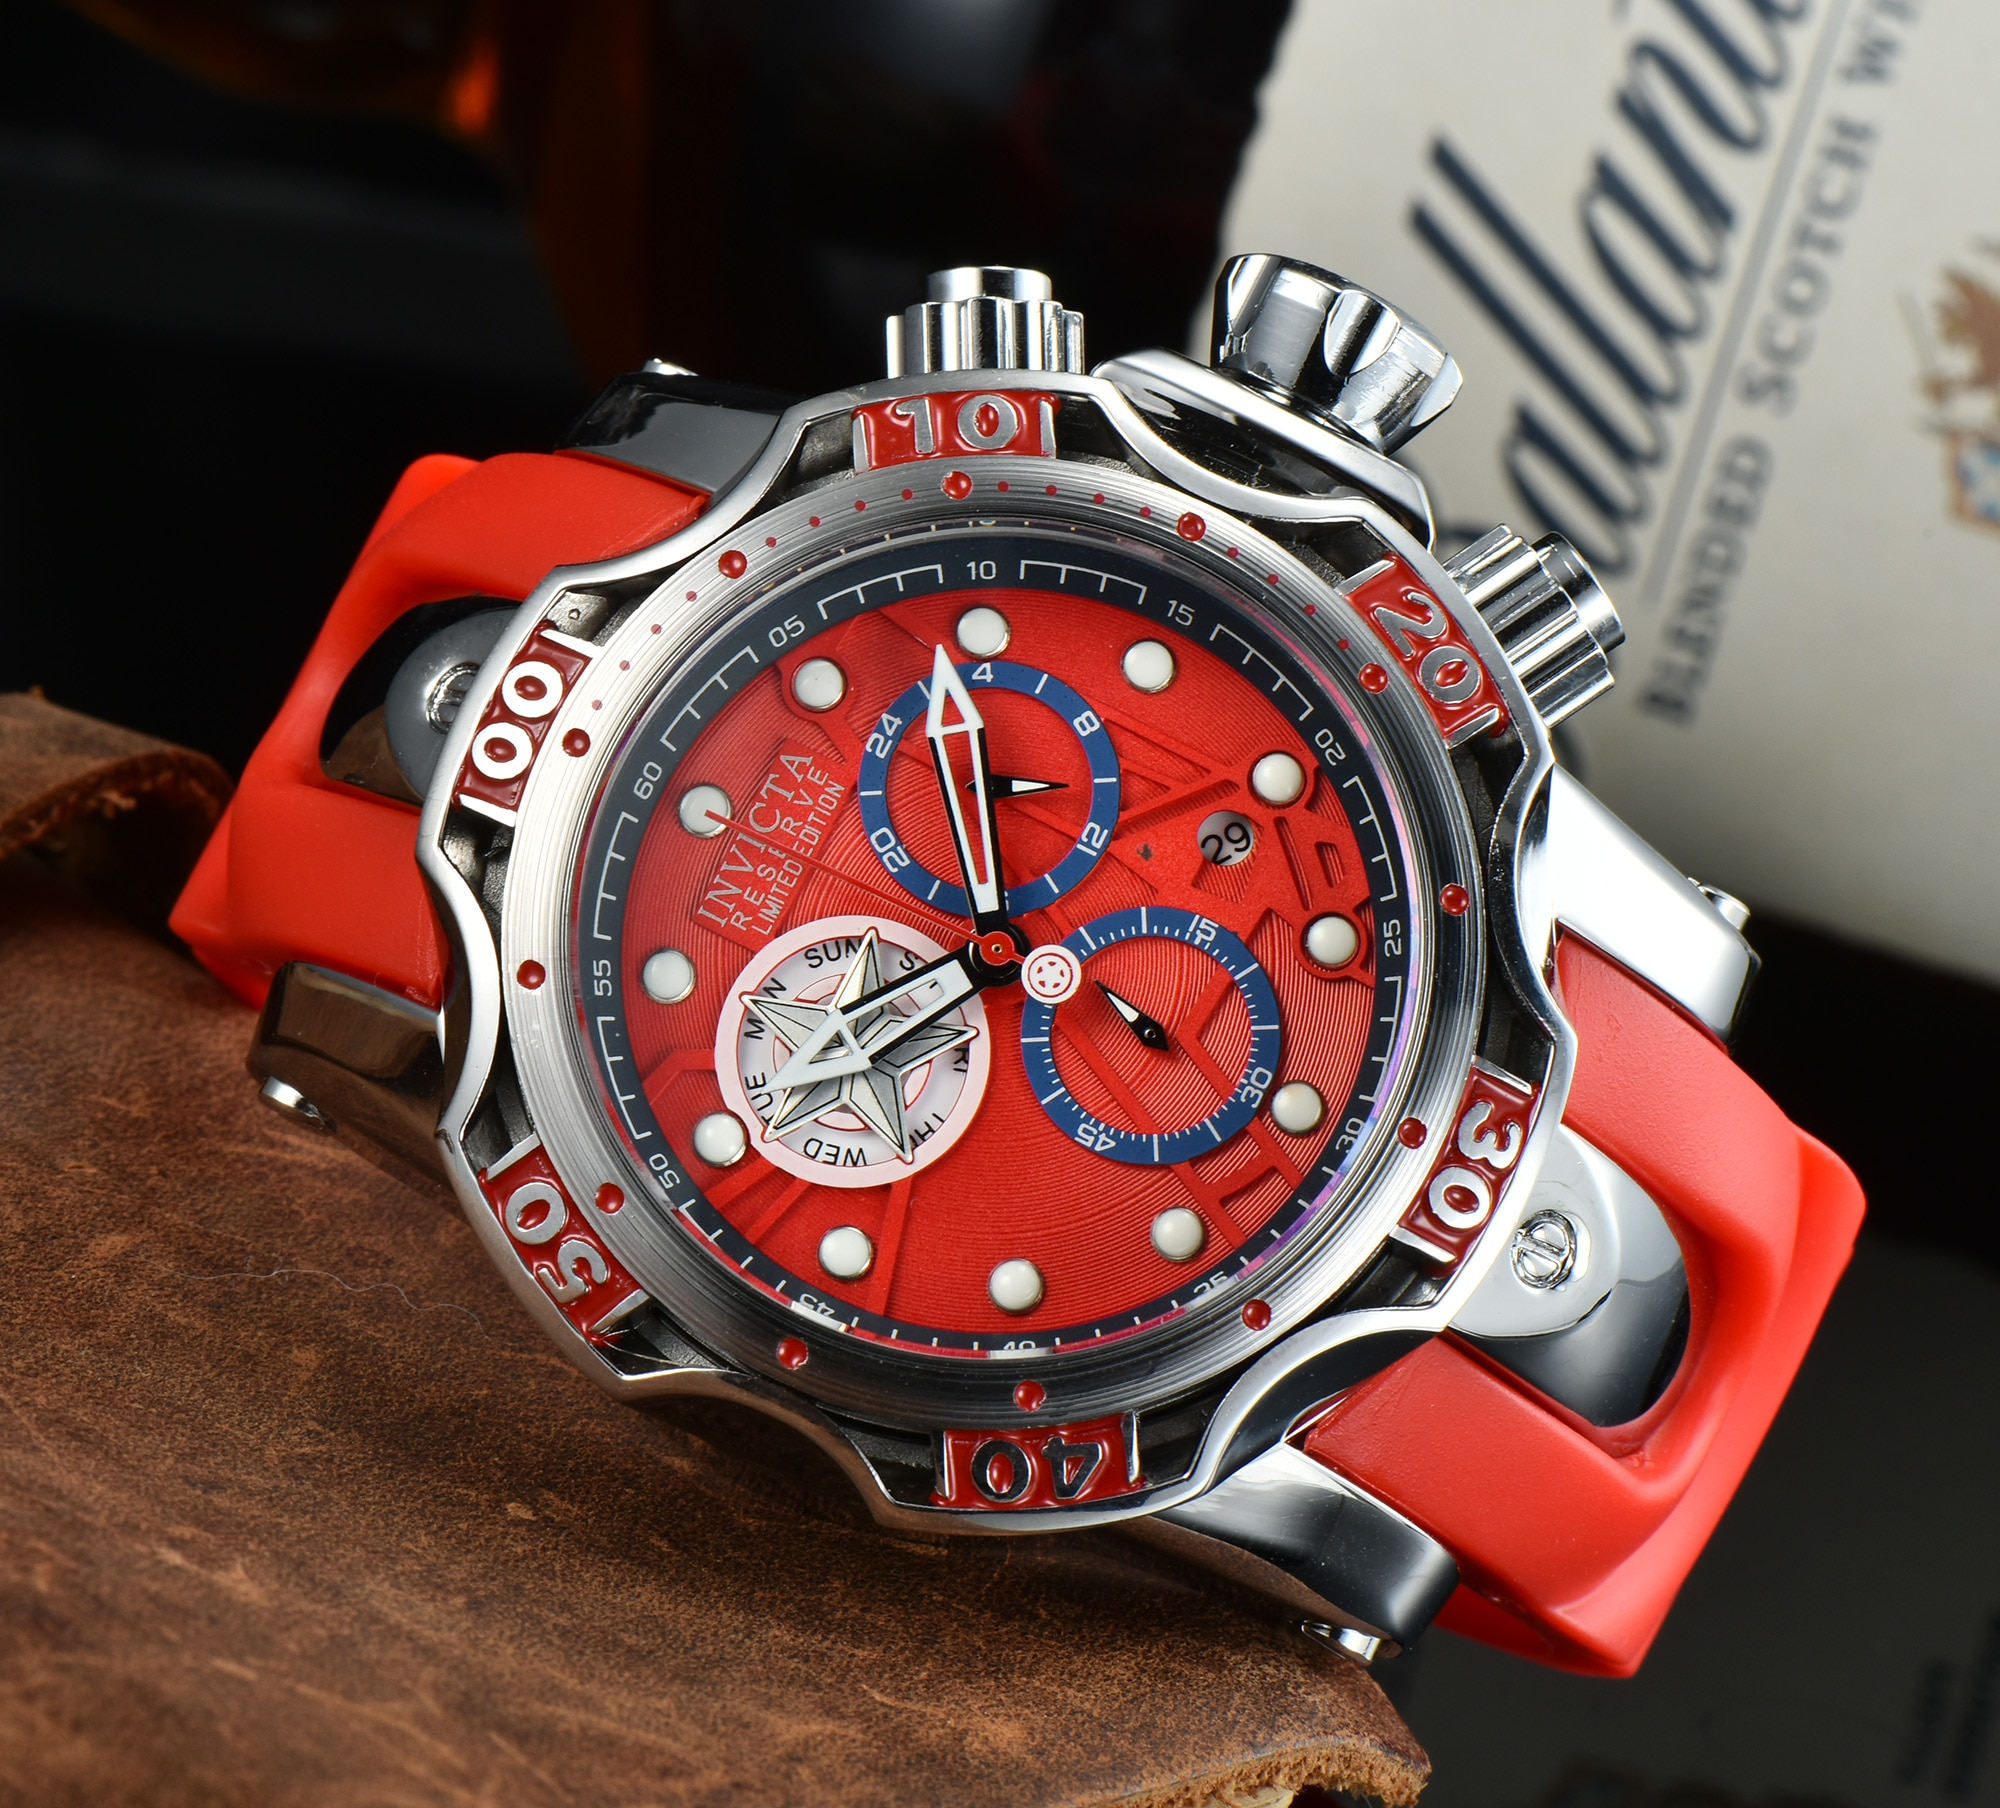 New Watch Fashion Casual Waterproof Quartz Watches for Men Calendar Wristwatch Mens Limited Edition Brand Luxury Watch with Box